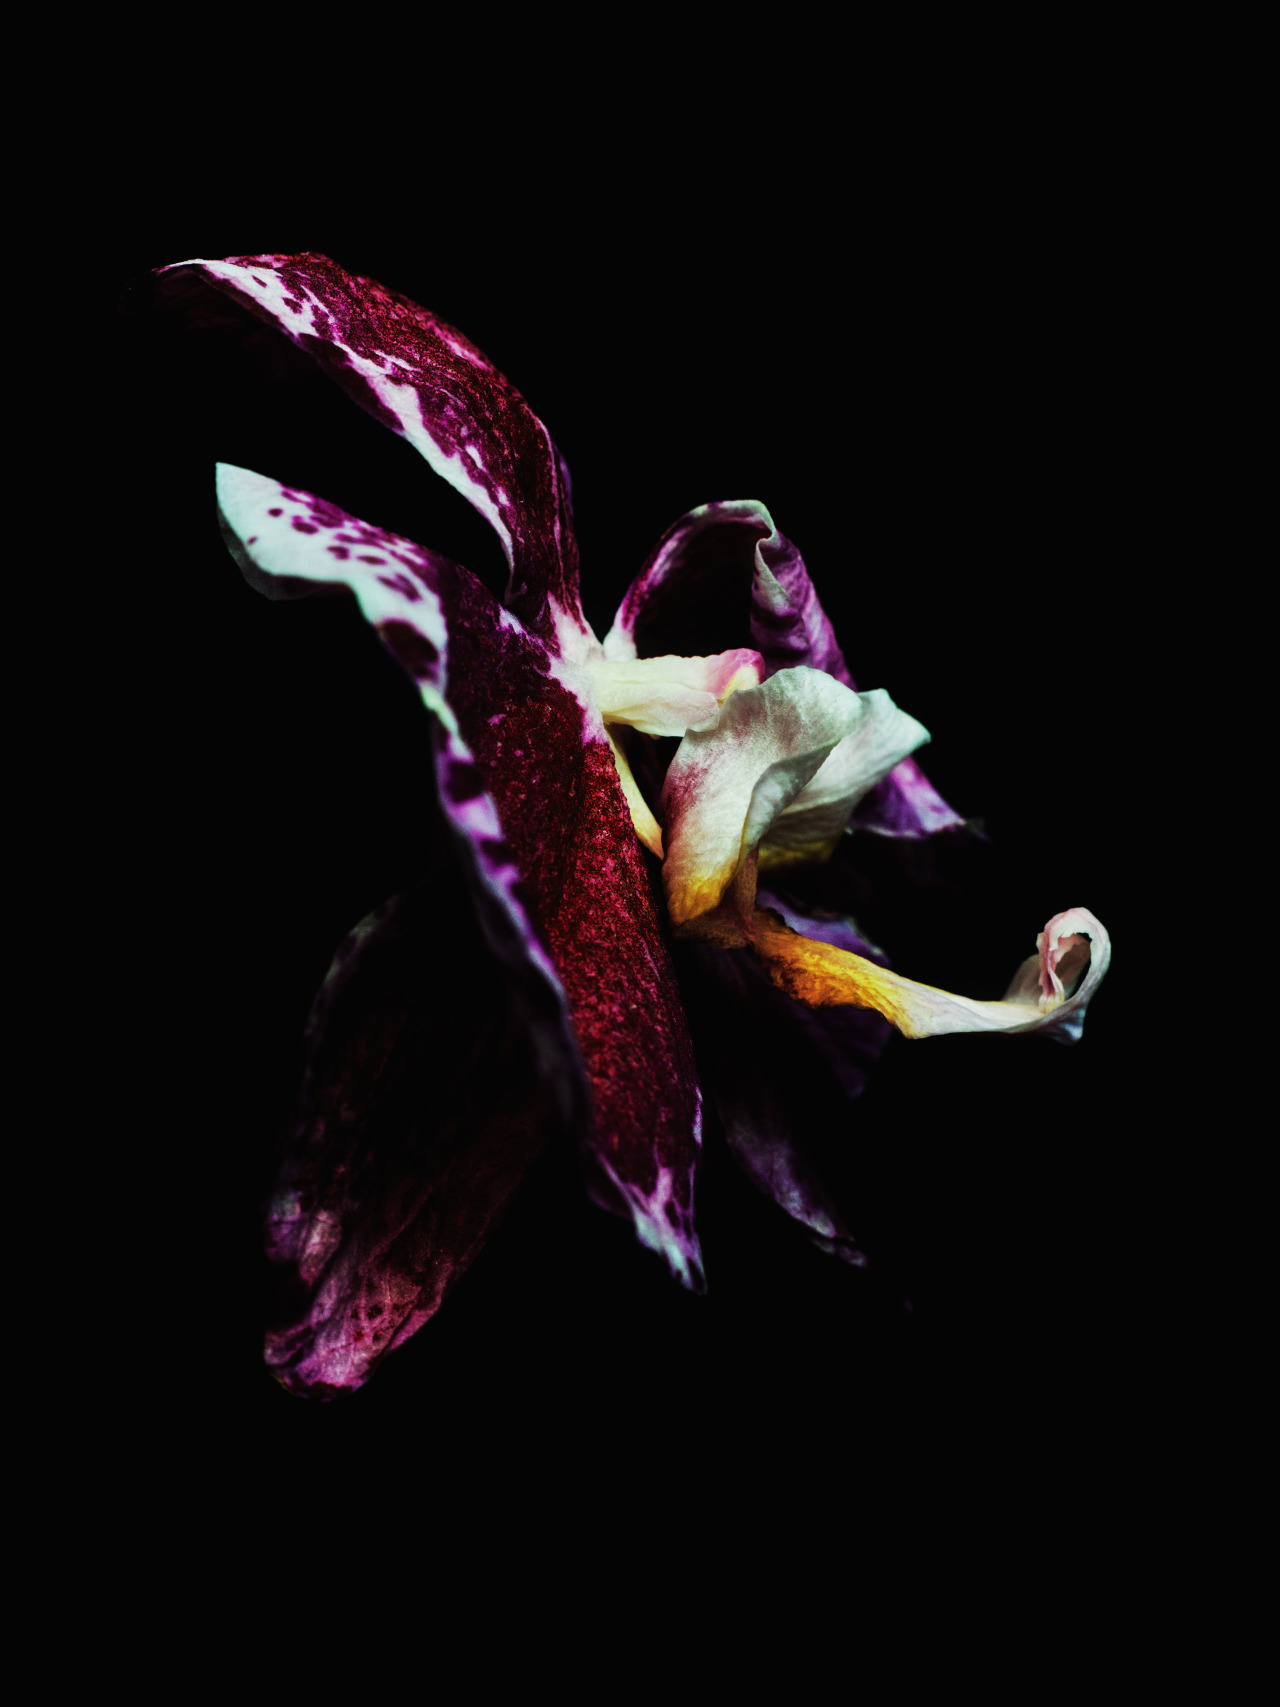 Decaying orchid was shot by Billy Kidd.